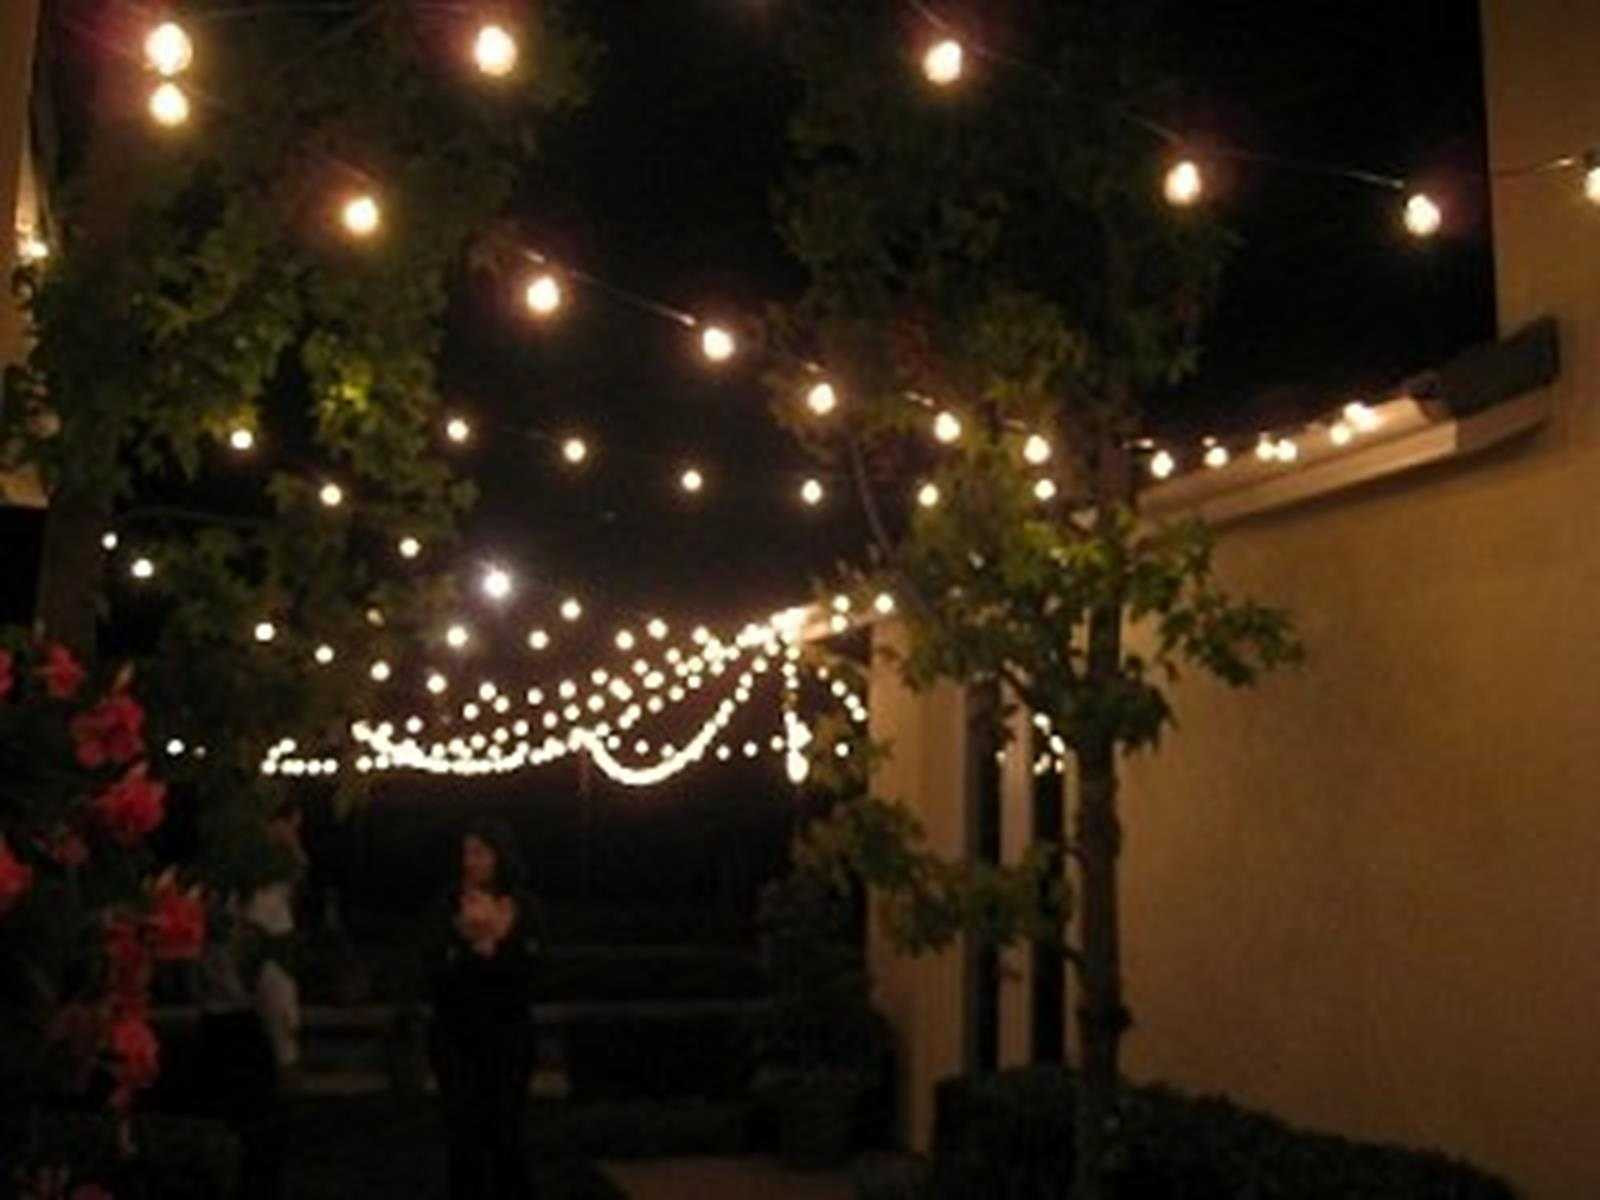 Best ideas about Backyard String Lights . Save or Pin String Lights Patio Lighting Backyard Outdoor Indoor 7 Now.